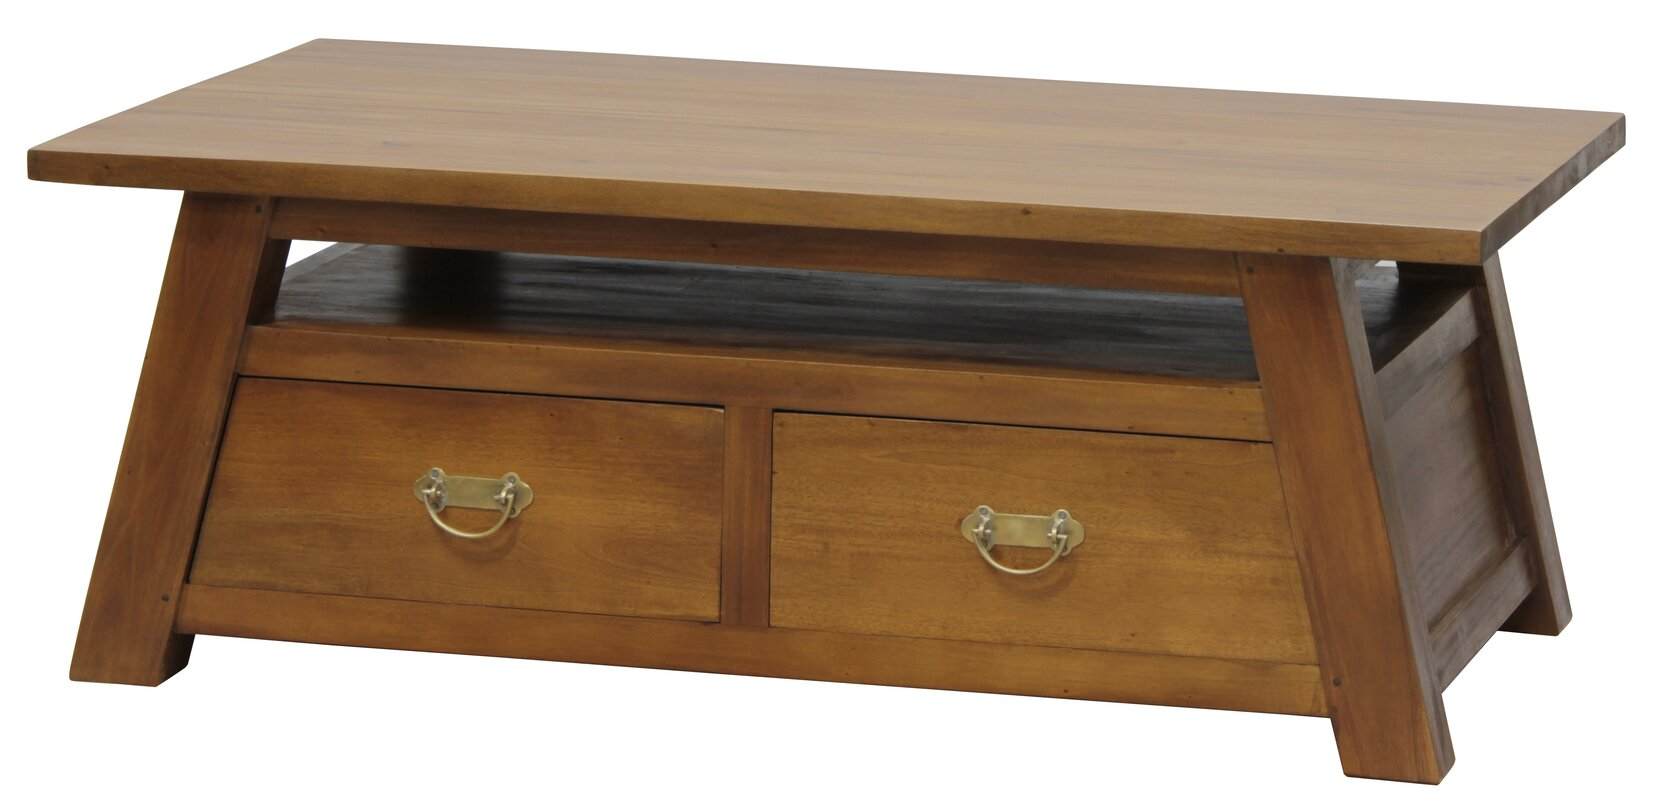 Japanese Fine Handcrafted Solid Mahogany Wood Coffee Table